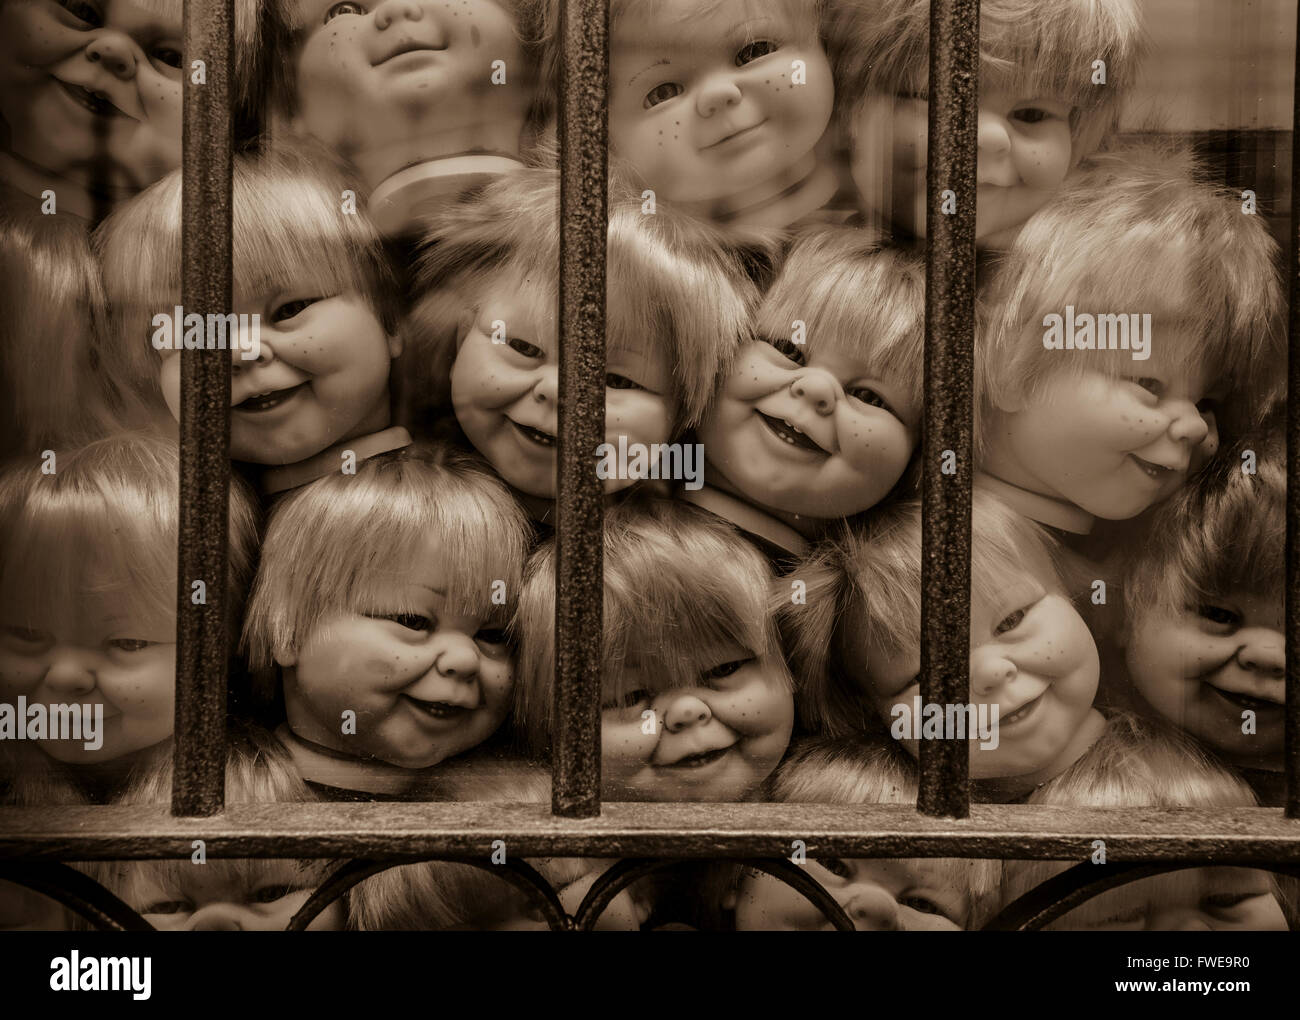 Creepy collection of baby doll heads in a window in Spain. - Stock Image